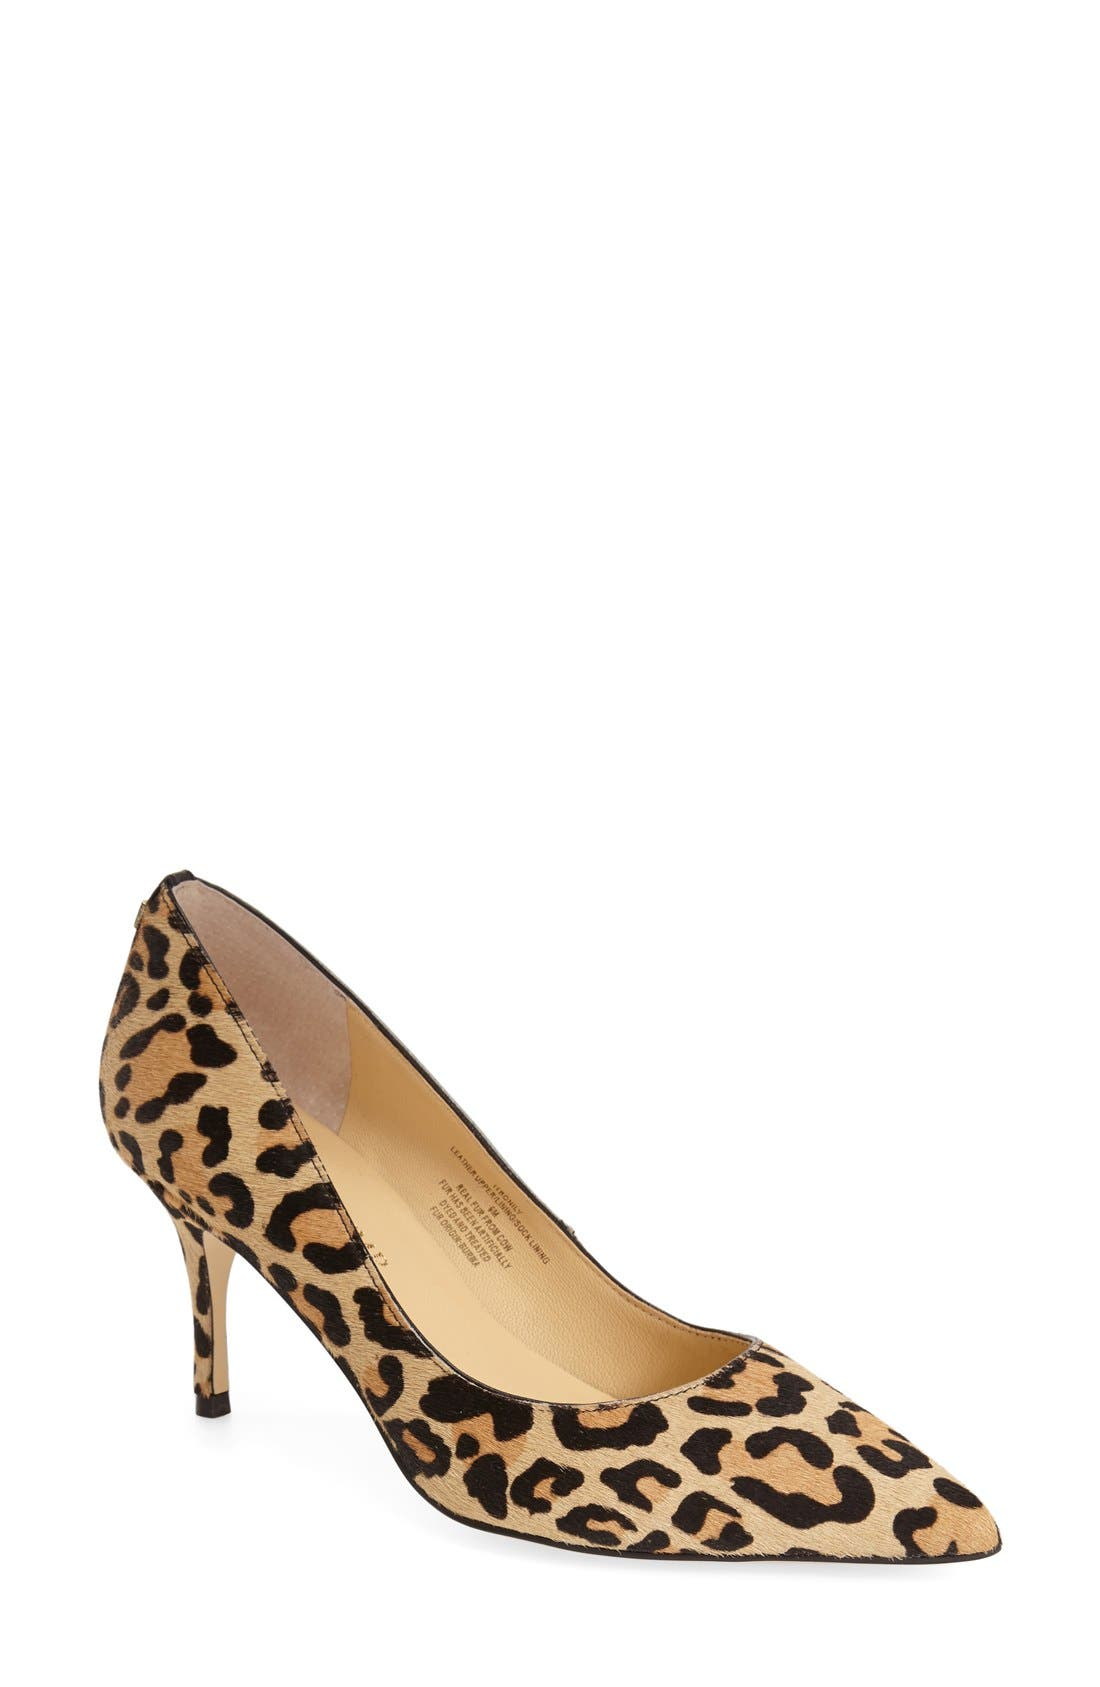 Main Image - Ivanka Trump 'Boni' Calf Hair Pointy Toe Pump (Women)